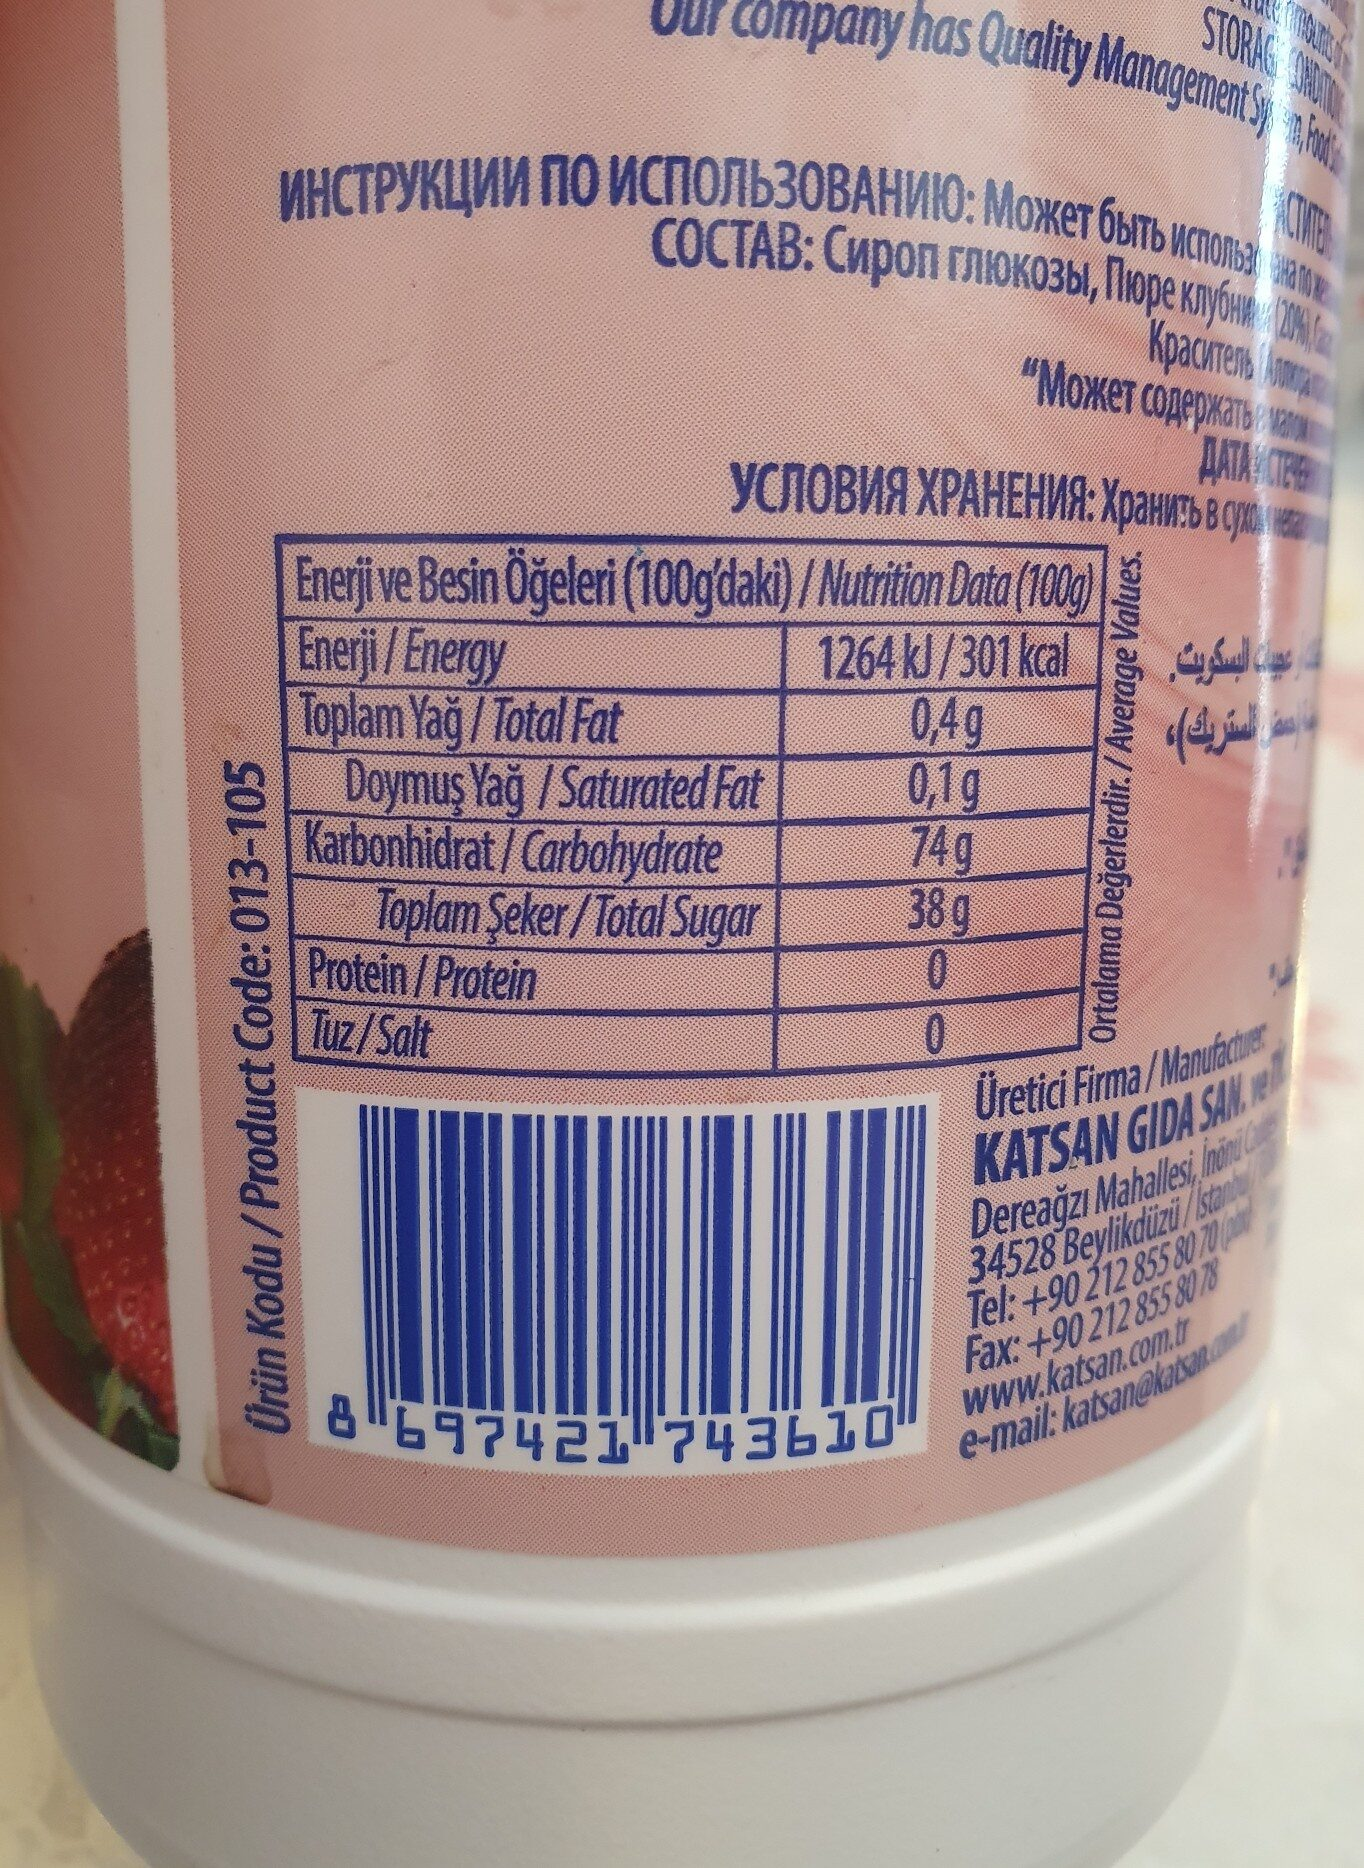 strawberry compound for bakery and pastry - Ingredients - en